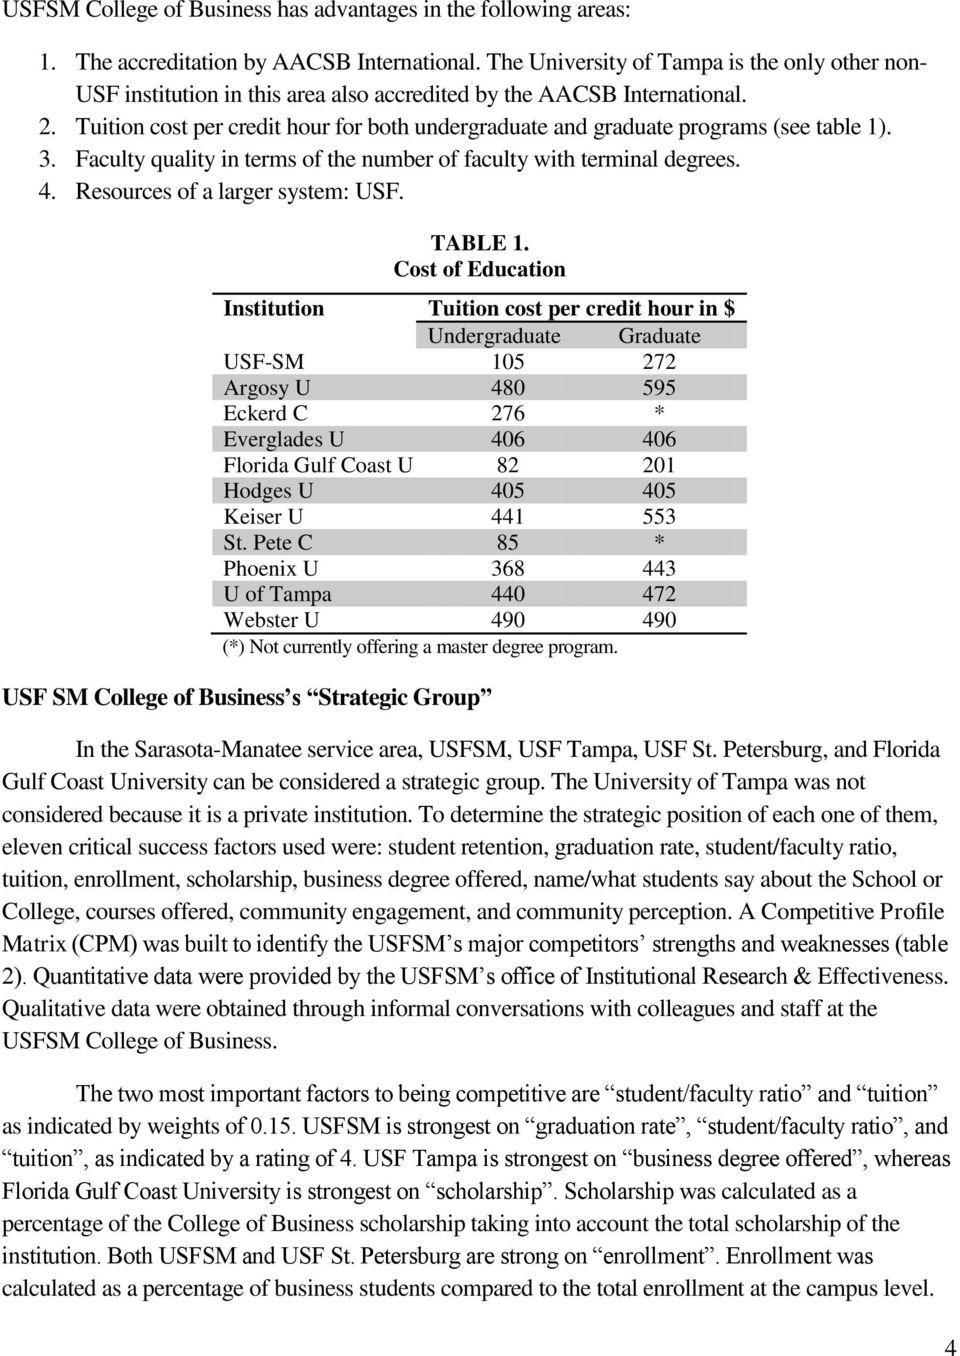 Tuition cost per credit hour for both undergraduate and graduate programs (see table 1). 3. Faculty quality in terms of the number of faculty with terminal degrees. 4.